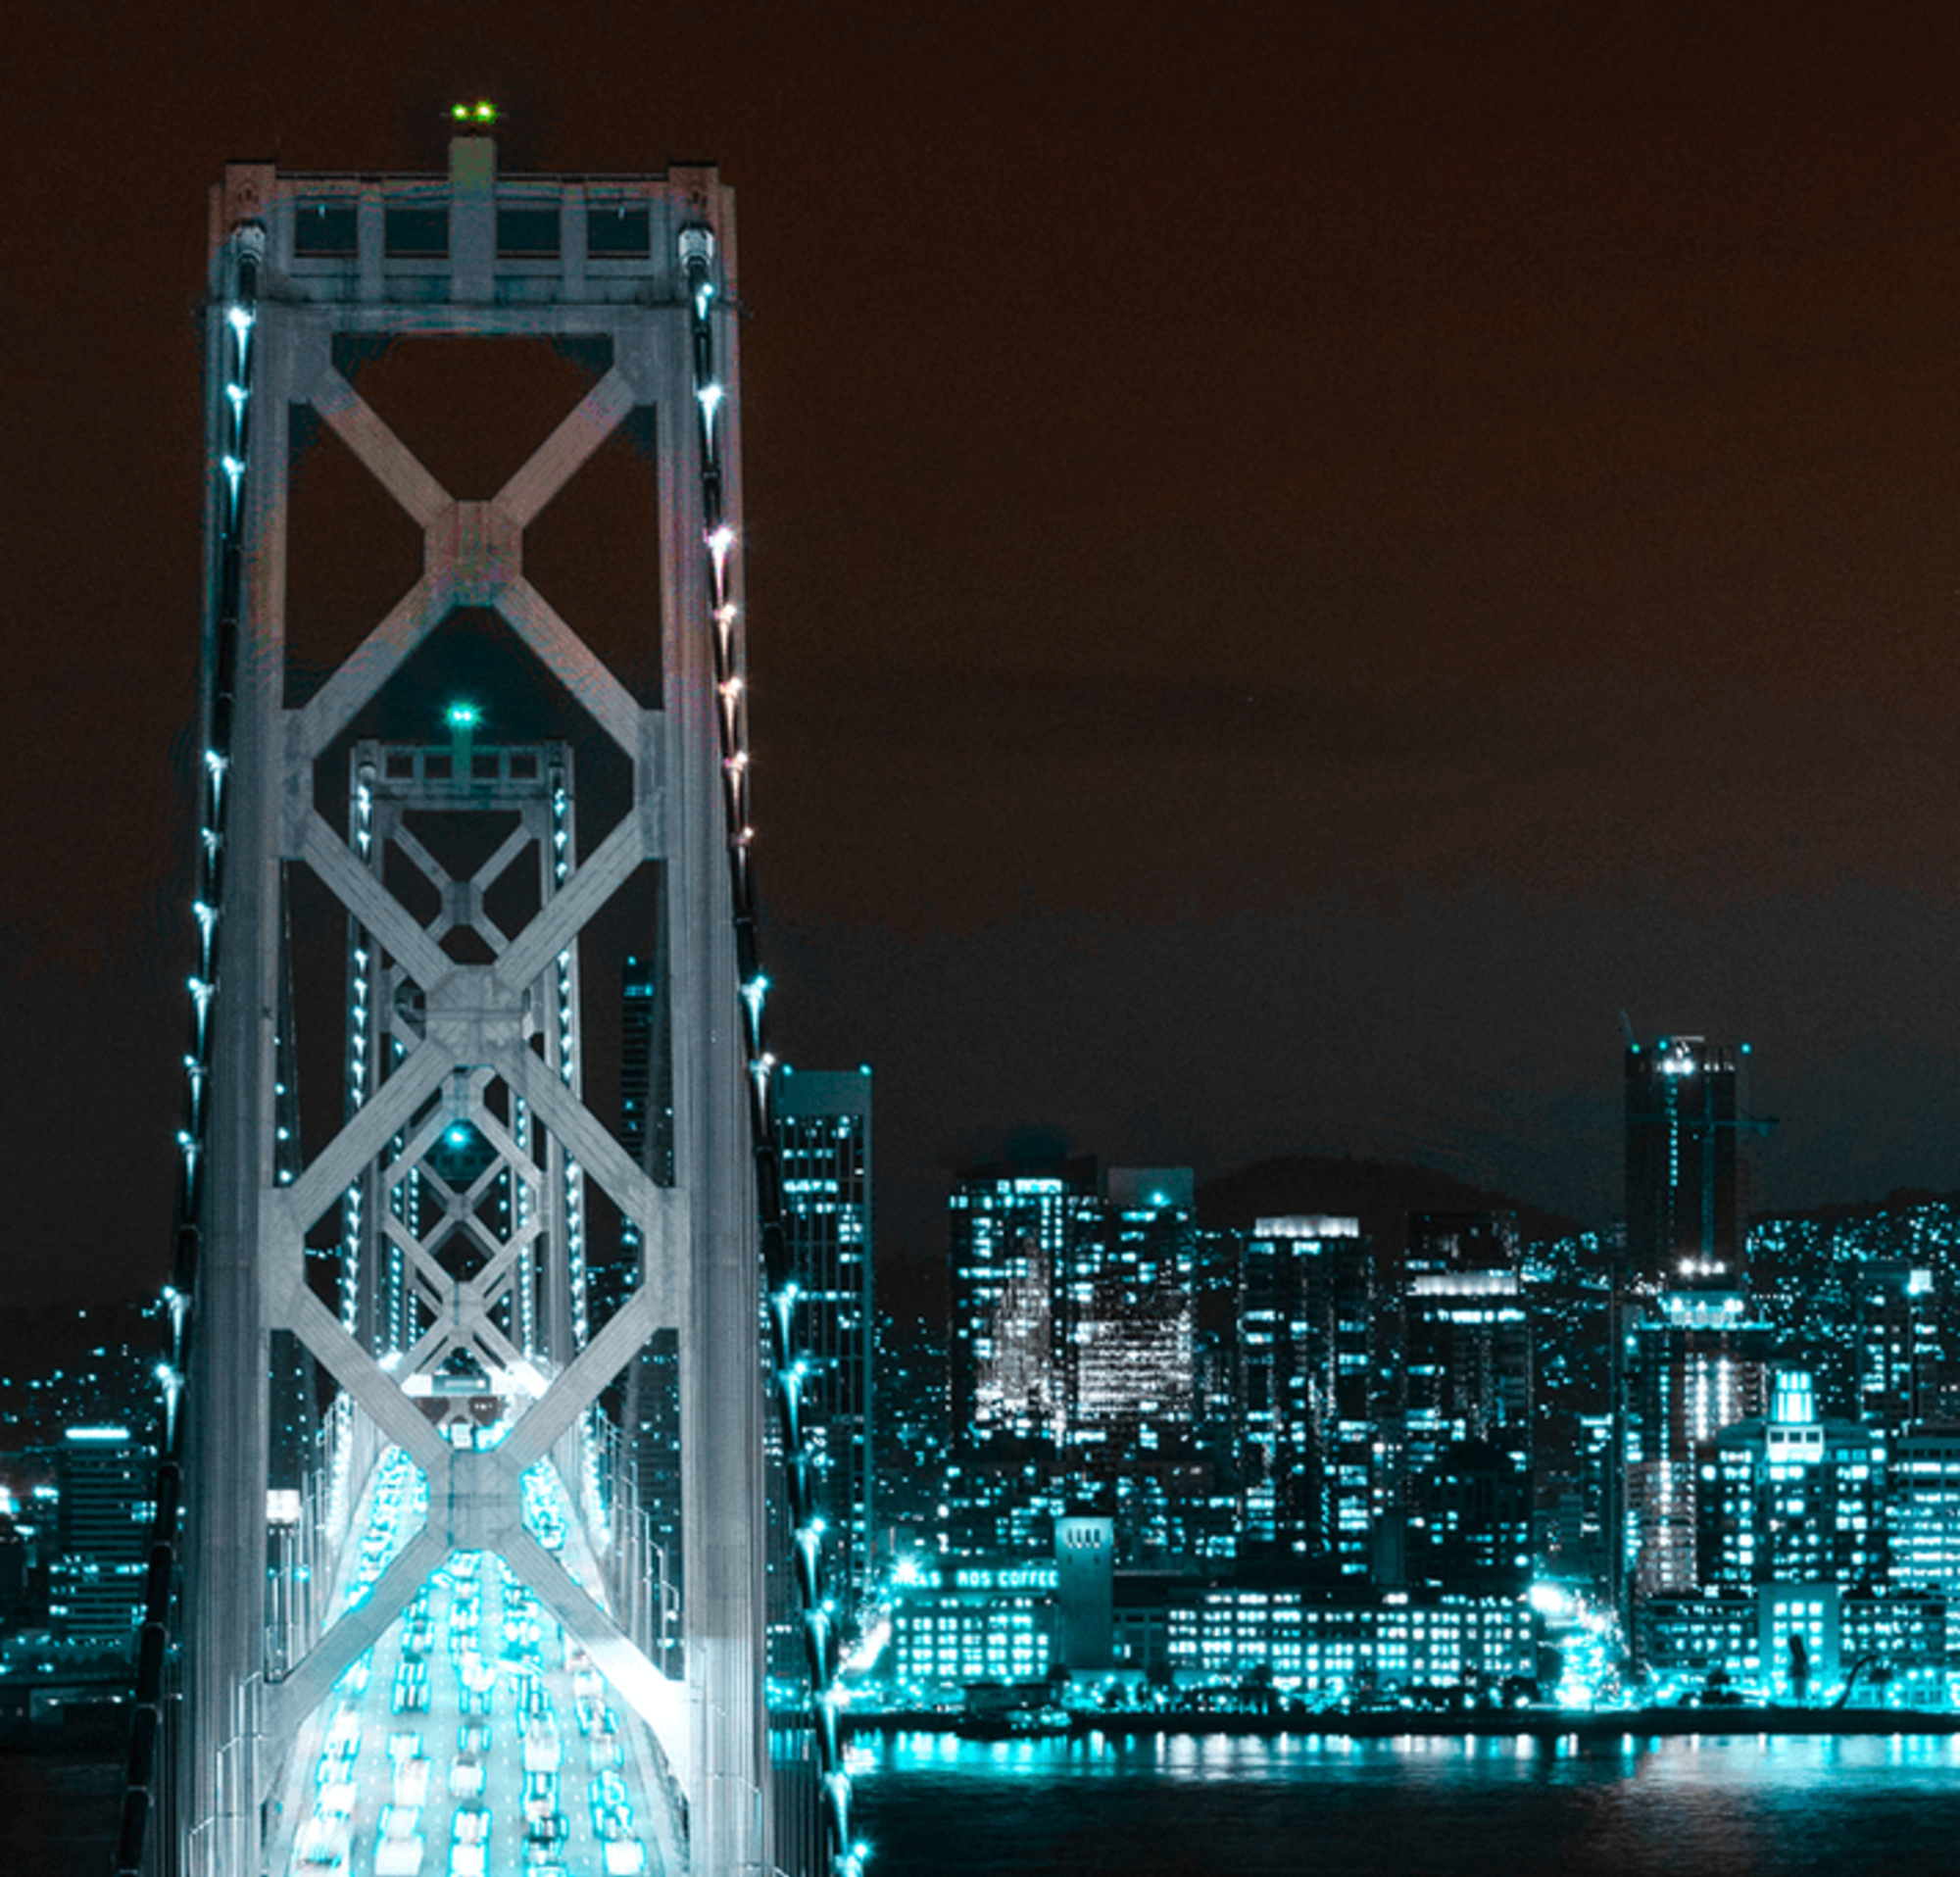 San Francisco's nighttime skyline, featuring the Salesforce Tower